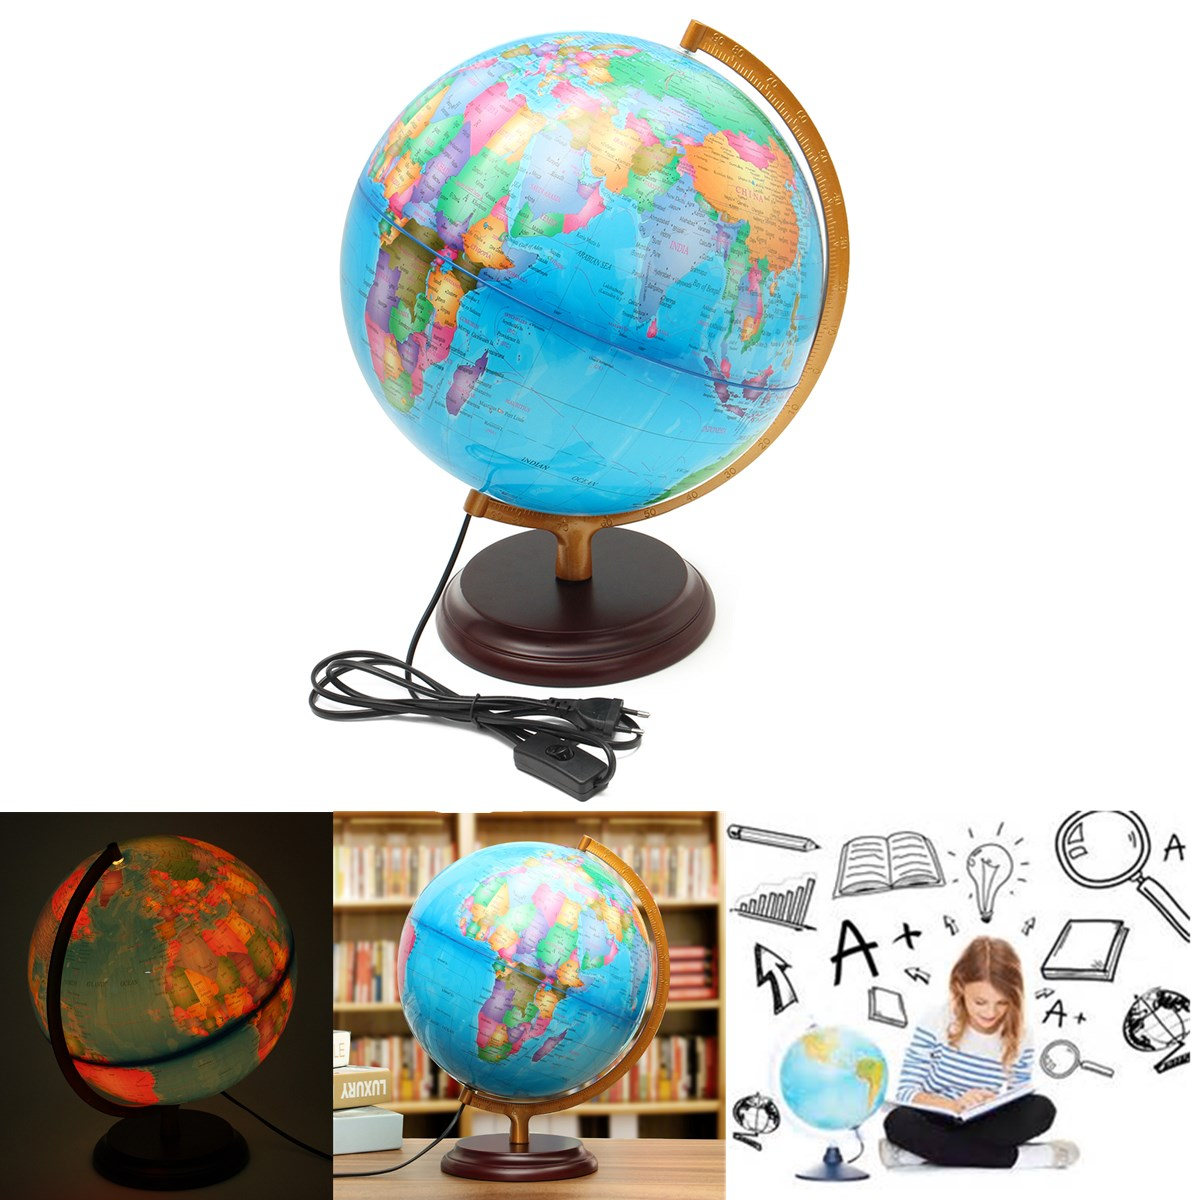 12.5 World Earth Globe Map Geography LED Illuminated for Home Office Desktop Decoration Education Toy Kids Gift geography map illuminated blue ocean world earth globe rotating with night light desktop decor for home school office eu plug